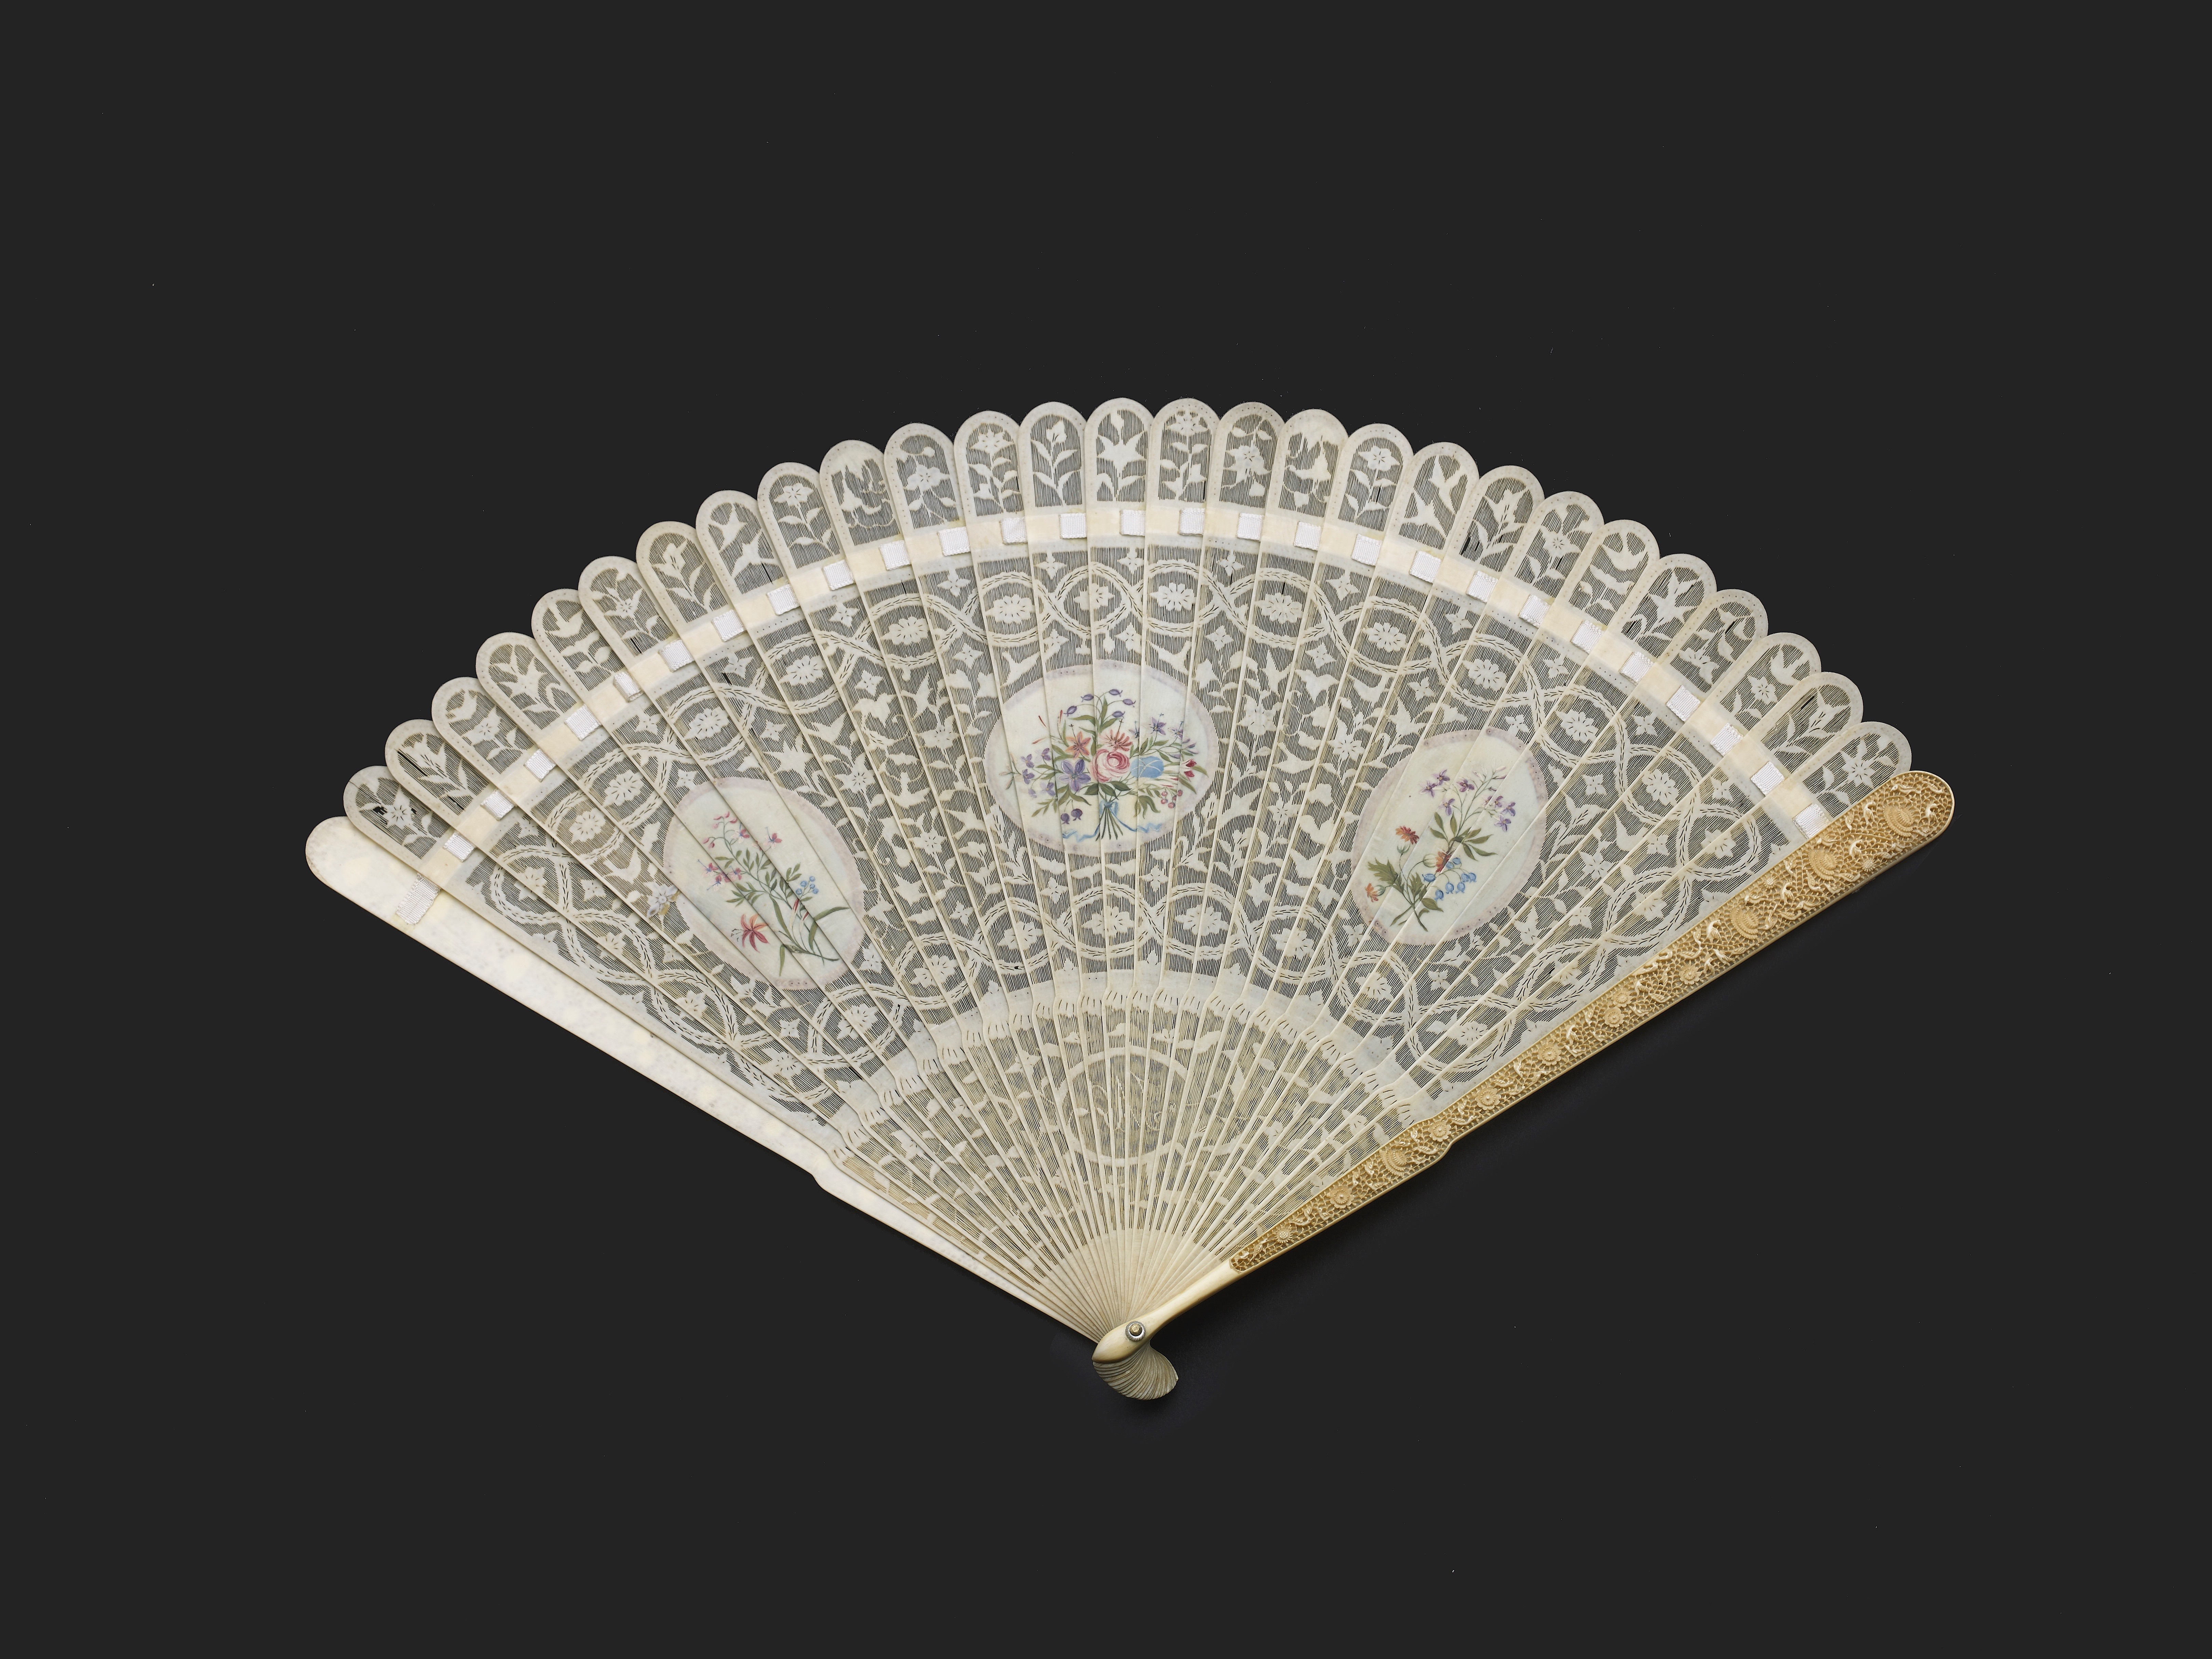 Lot 16 - A RARE CHINESE EXPORT IVORY BRISE FAN, QING DYNASTY, QIANLONG PERIOD, CIRCA 1770-1780